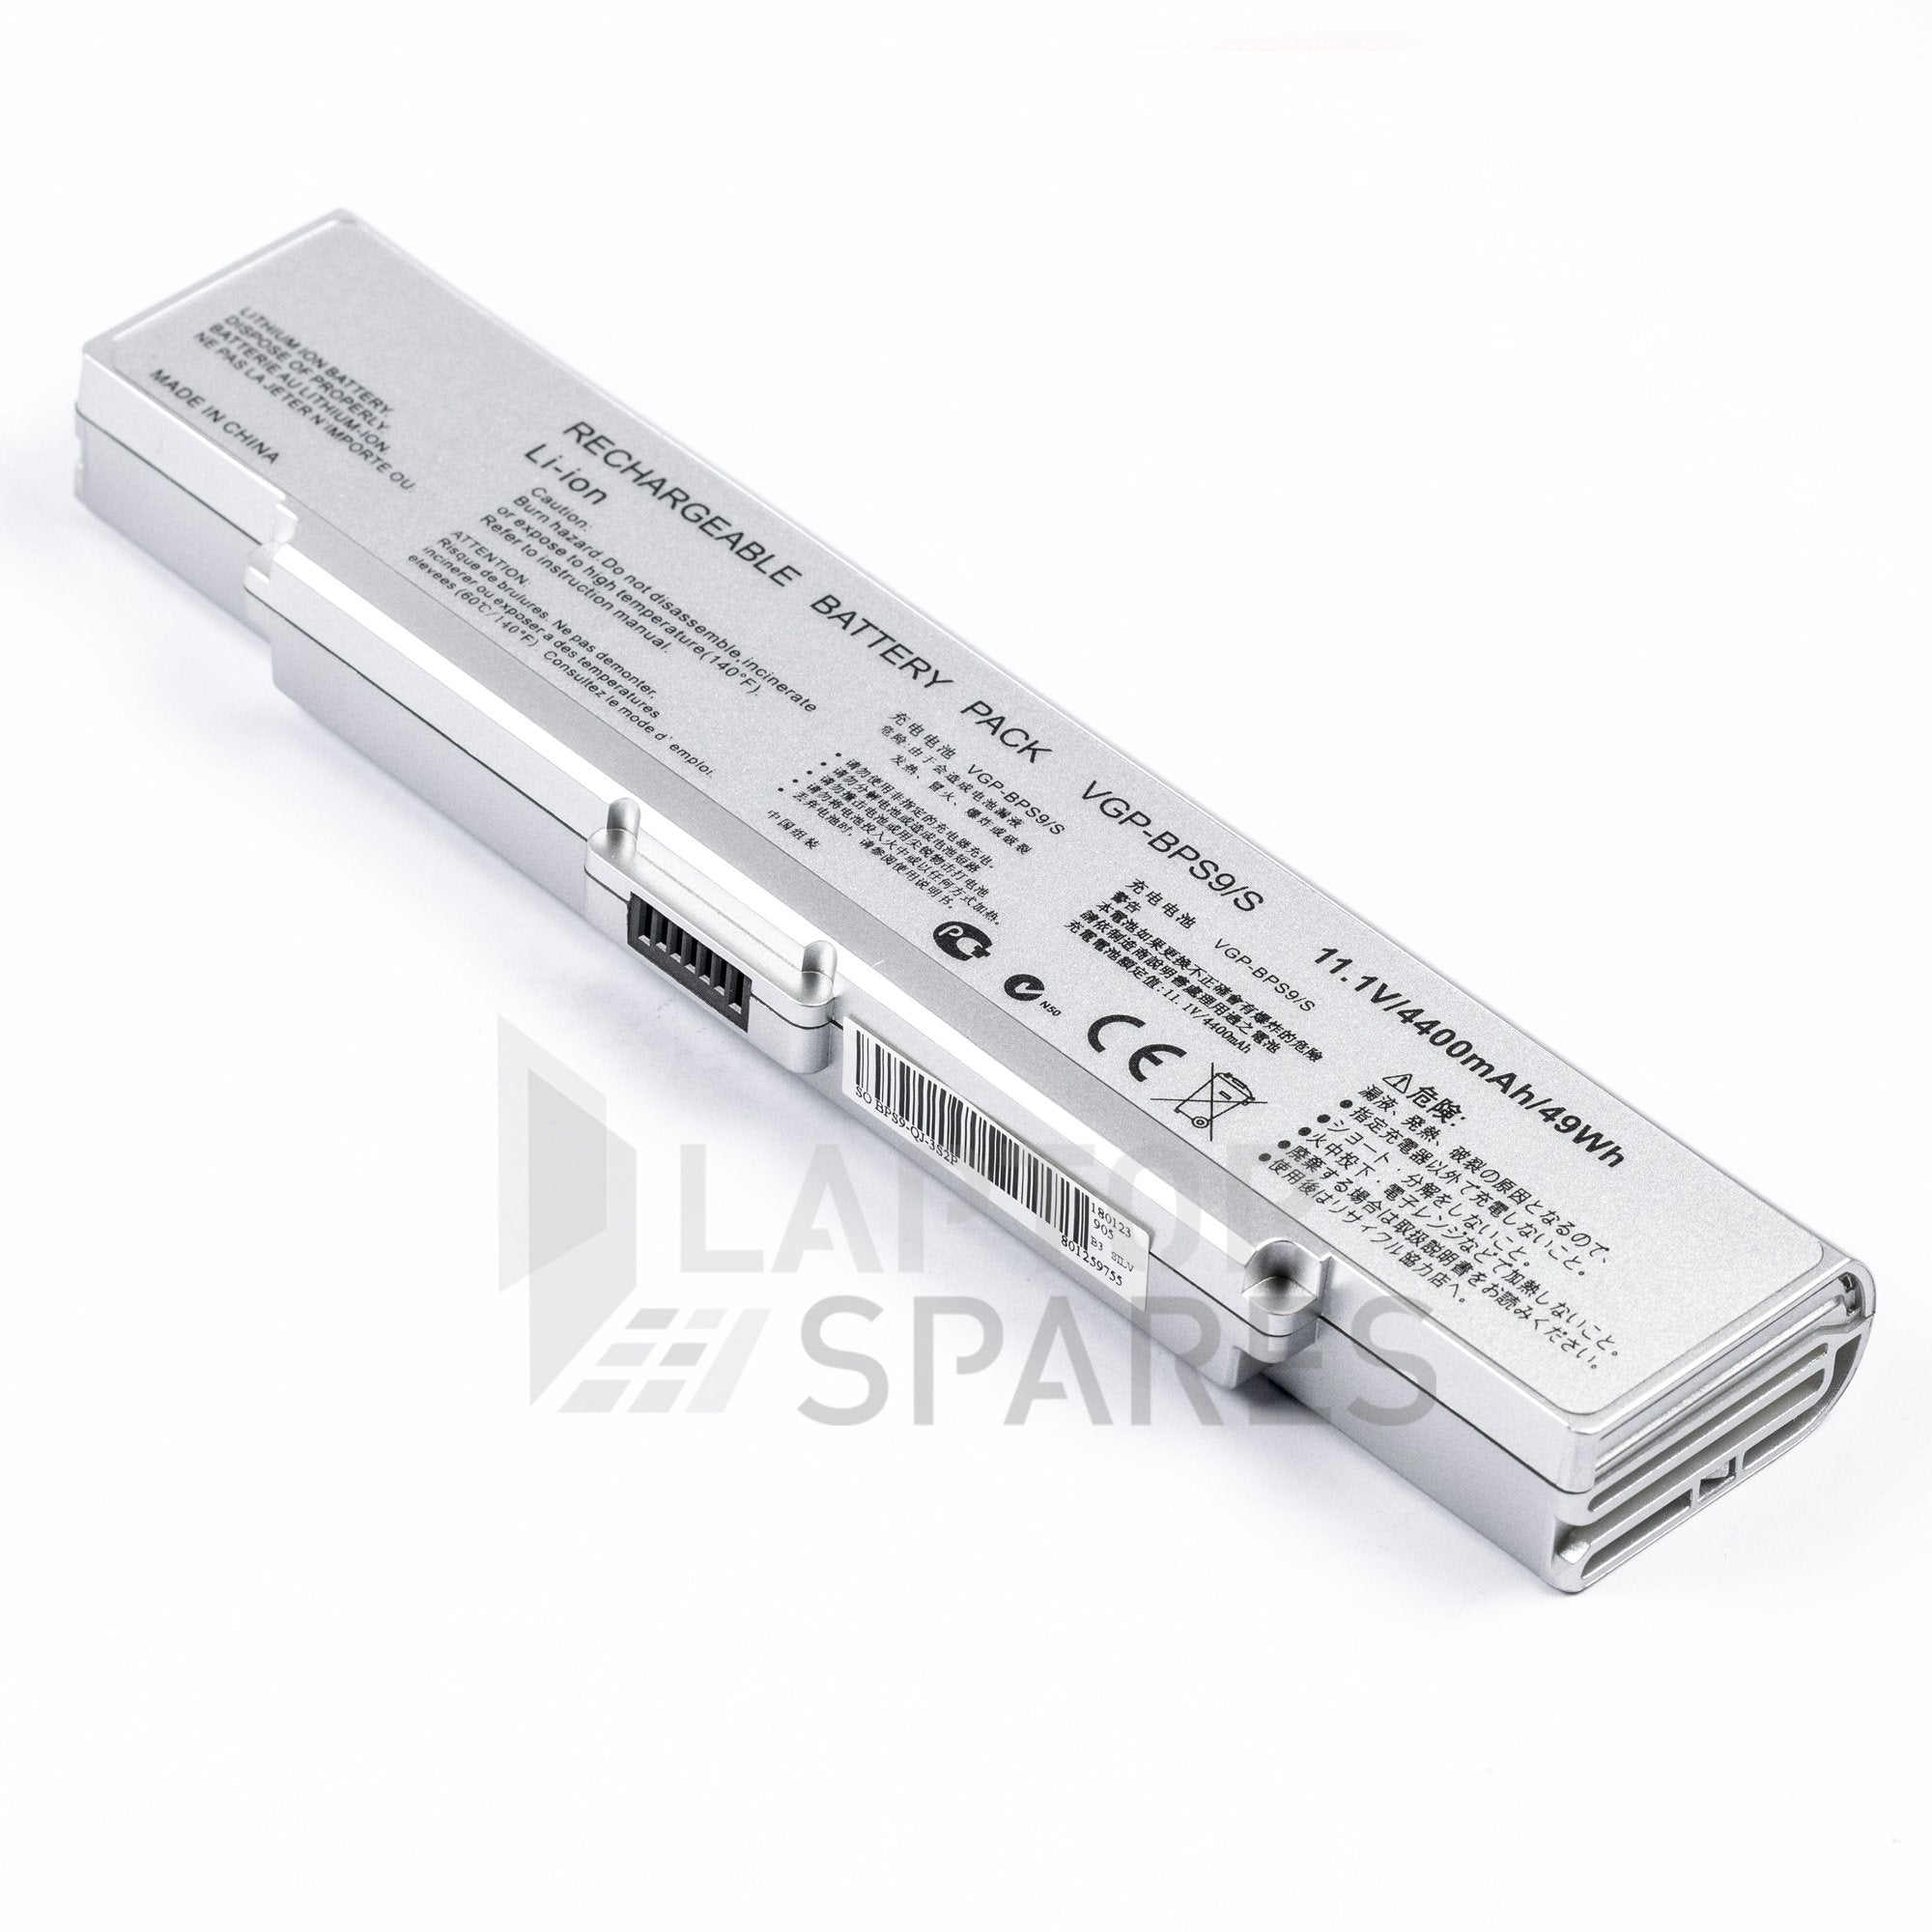 Sony VAIO VGN-NR290E/S 4400mAh 6 Cell Battery